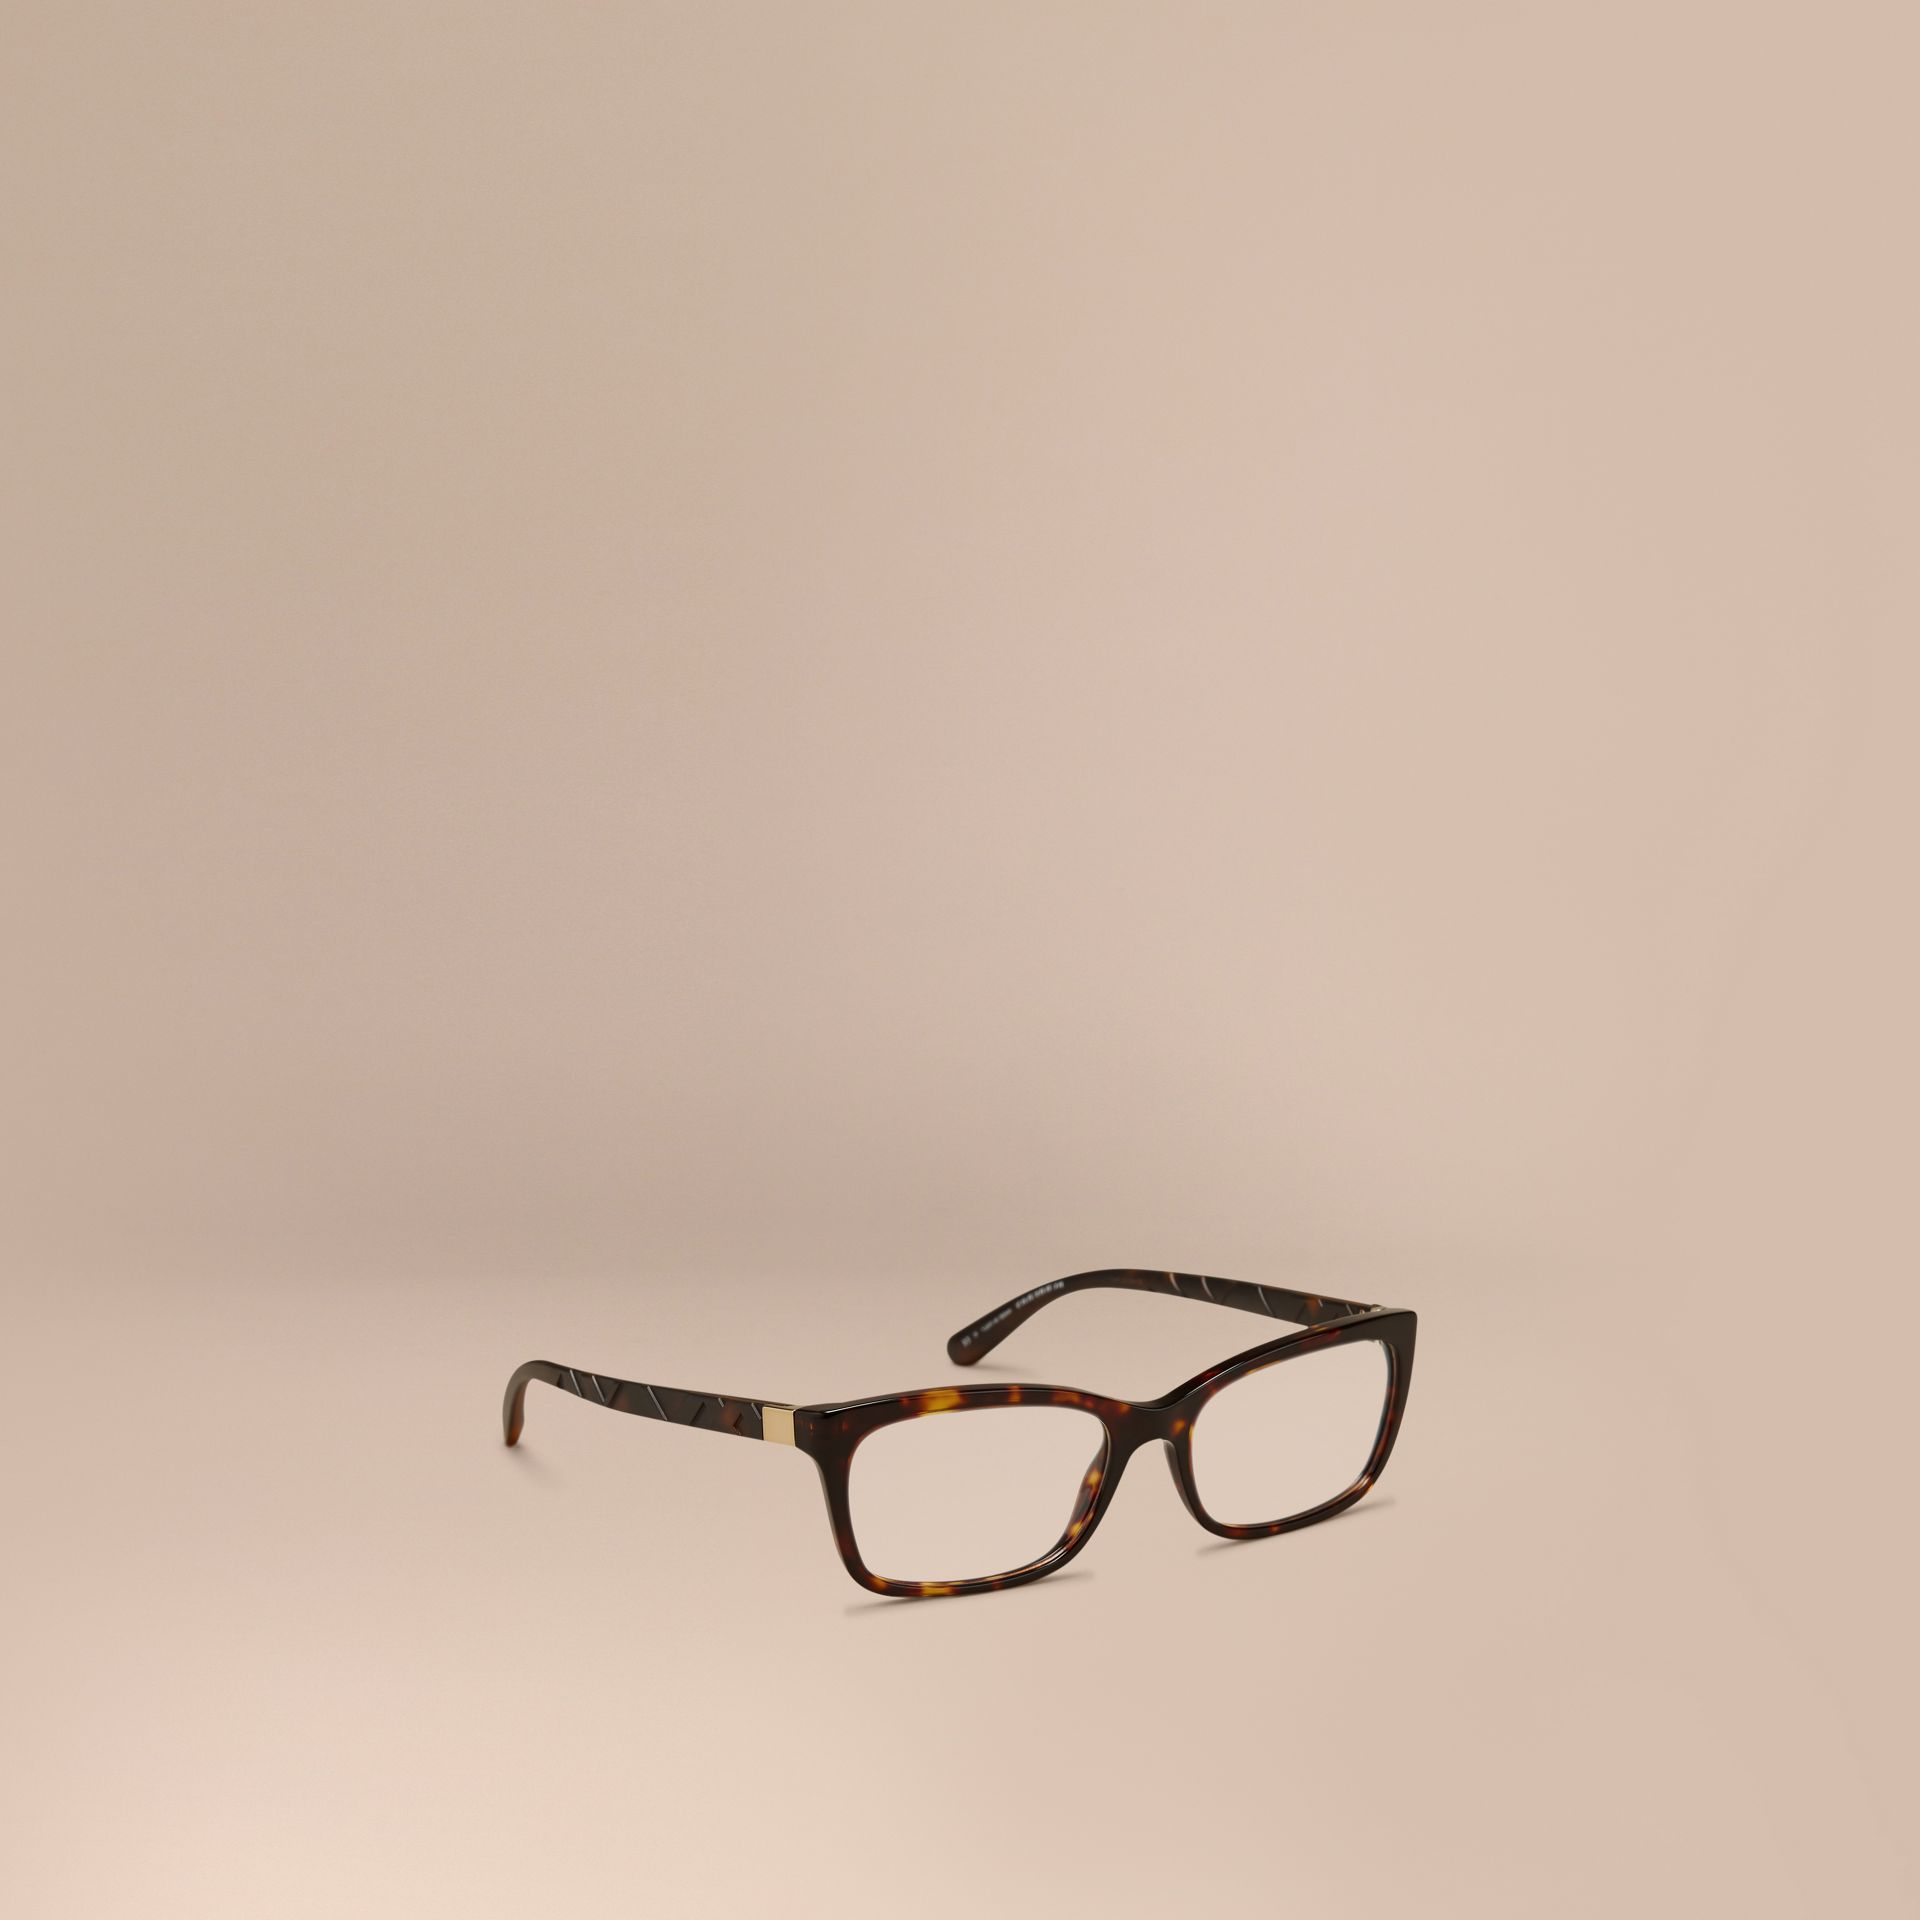 Tortoiseshell Check Detail Rectangular Optical Frames Tortoiseshell - gallery image 1